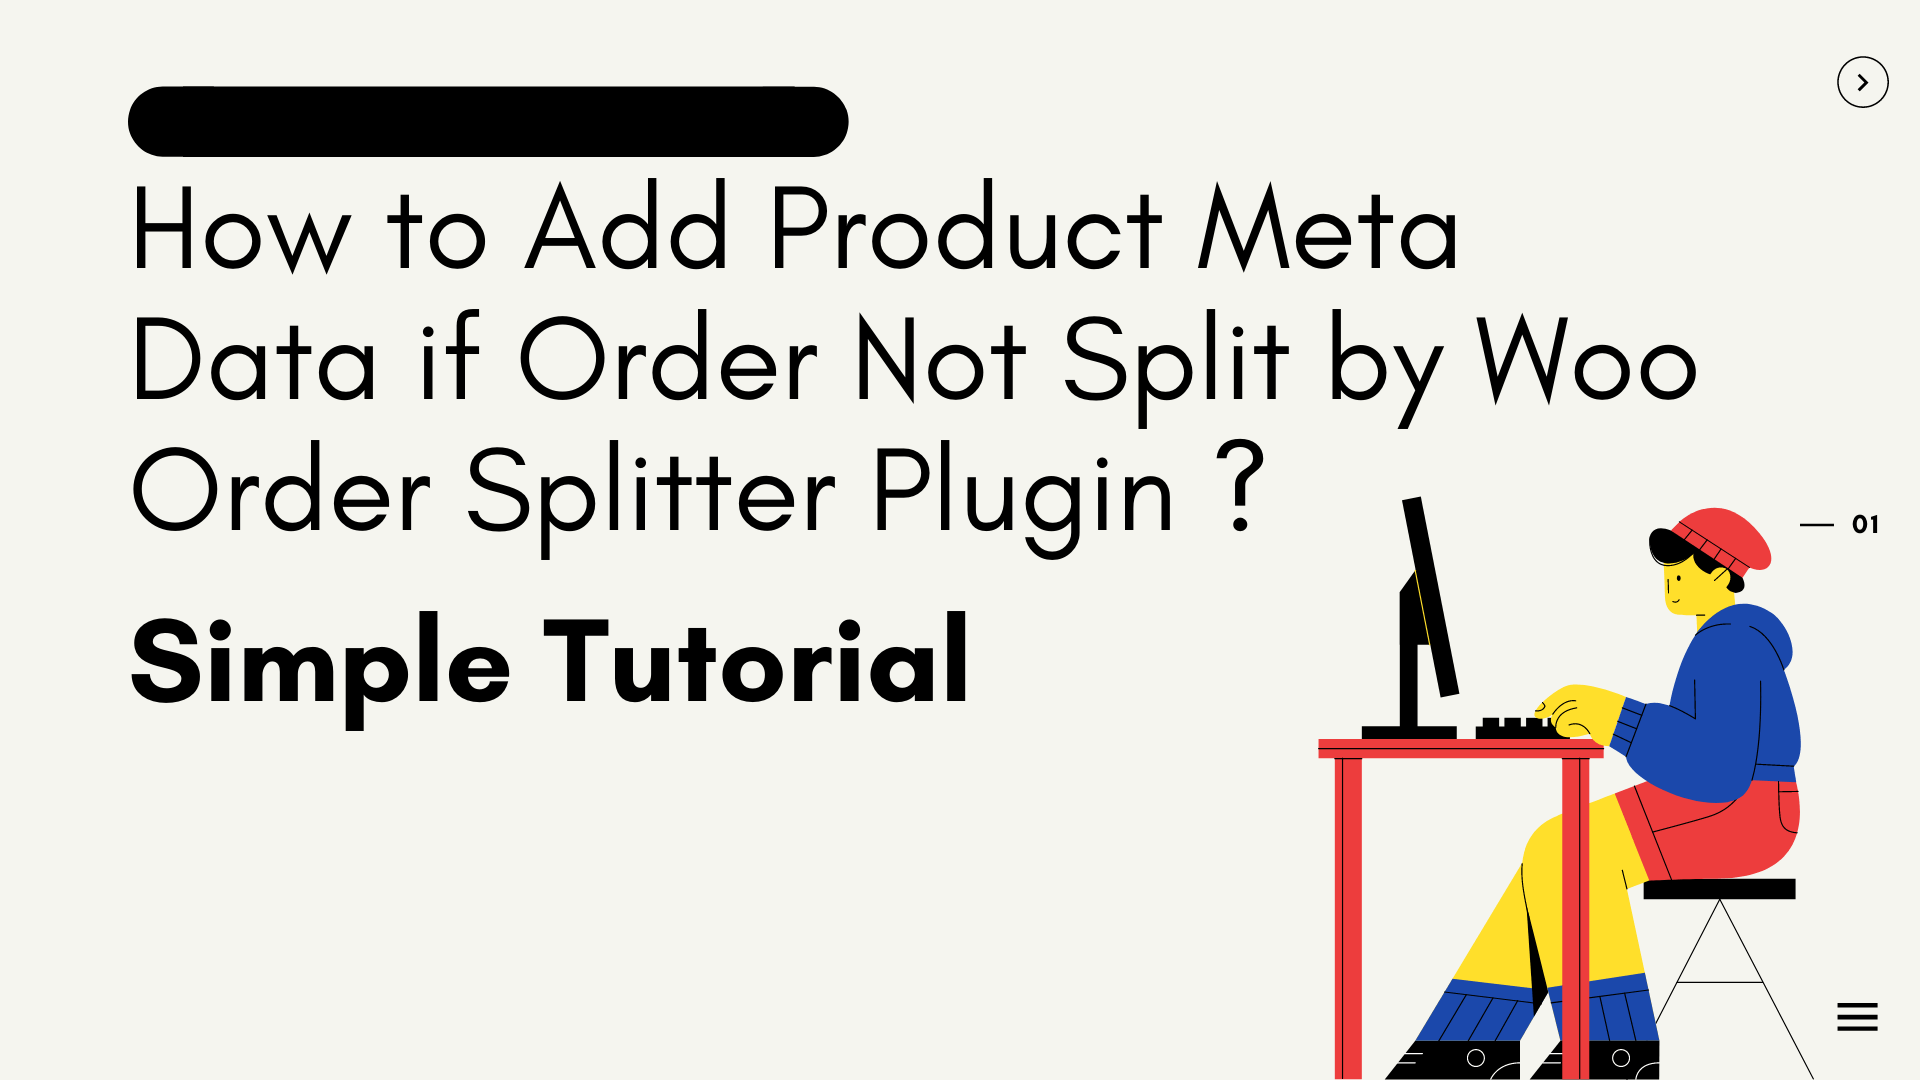 How to Add Product Meta Data if Order Not Split by Woo Order Splitter Plugin